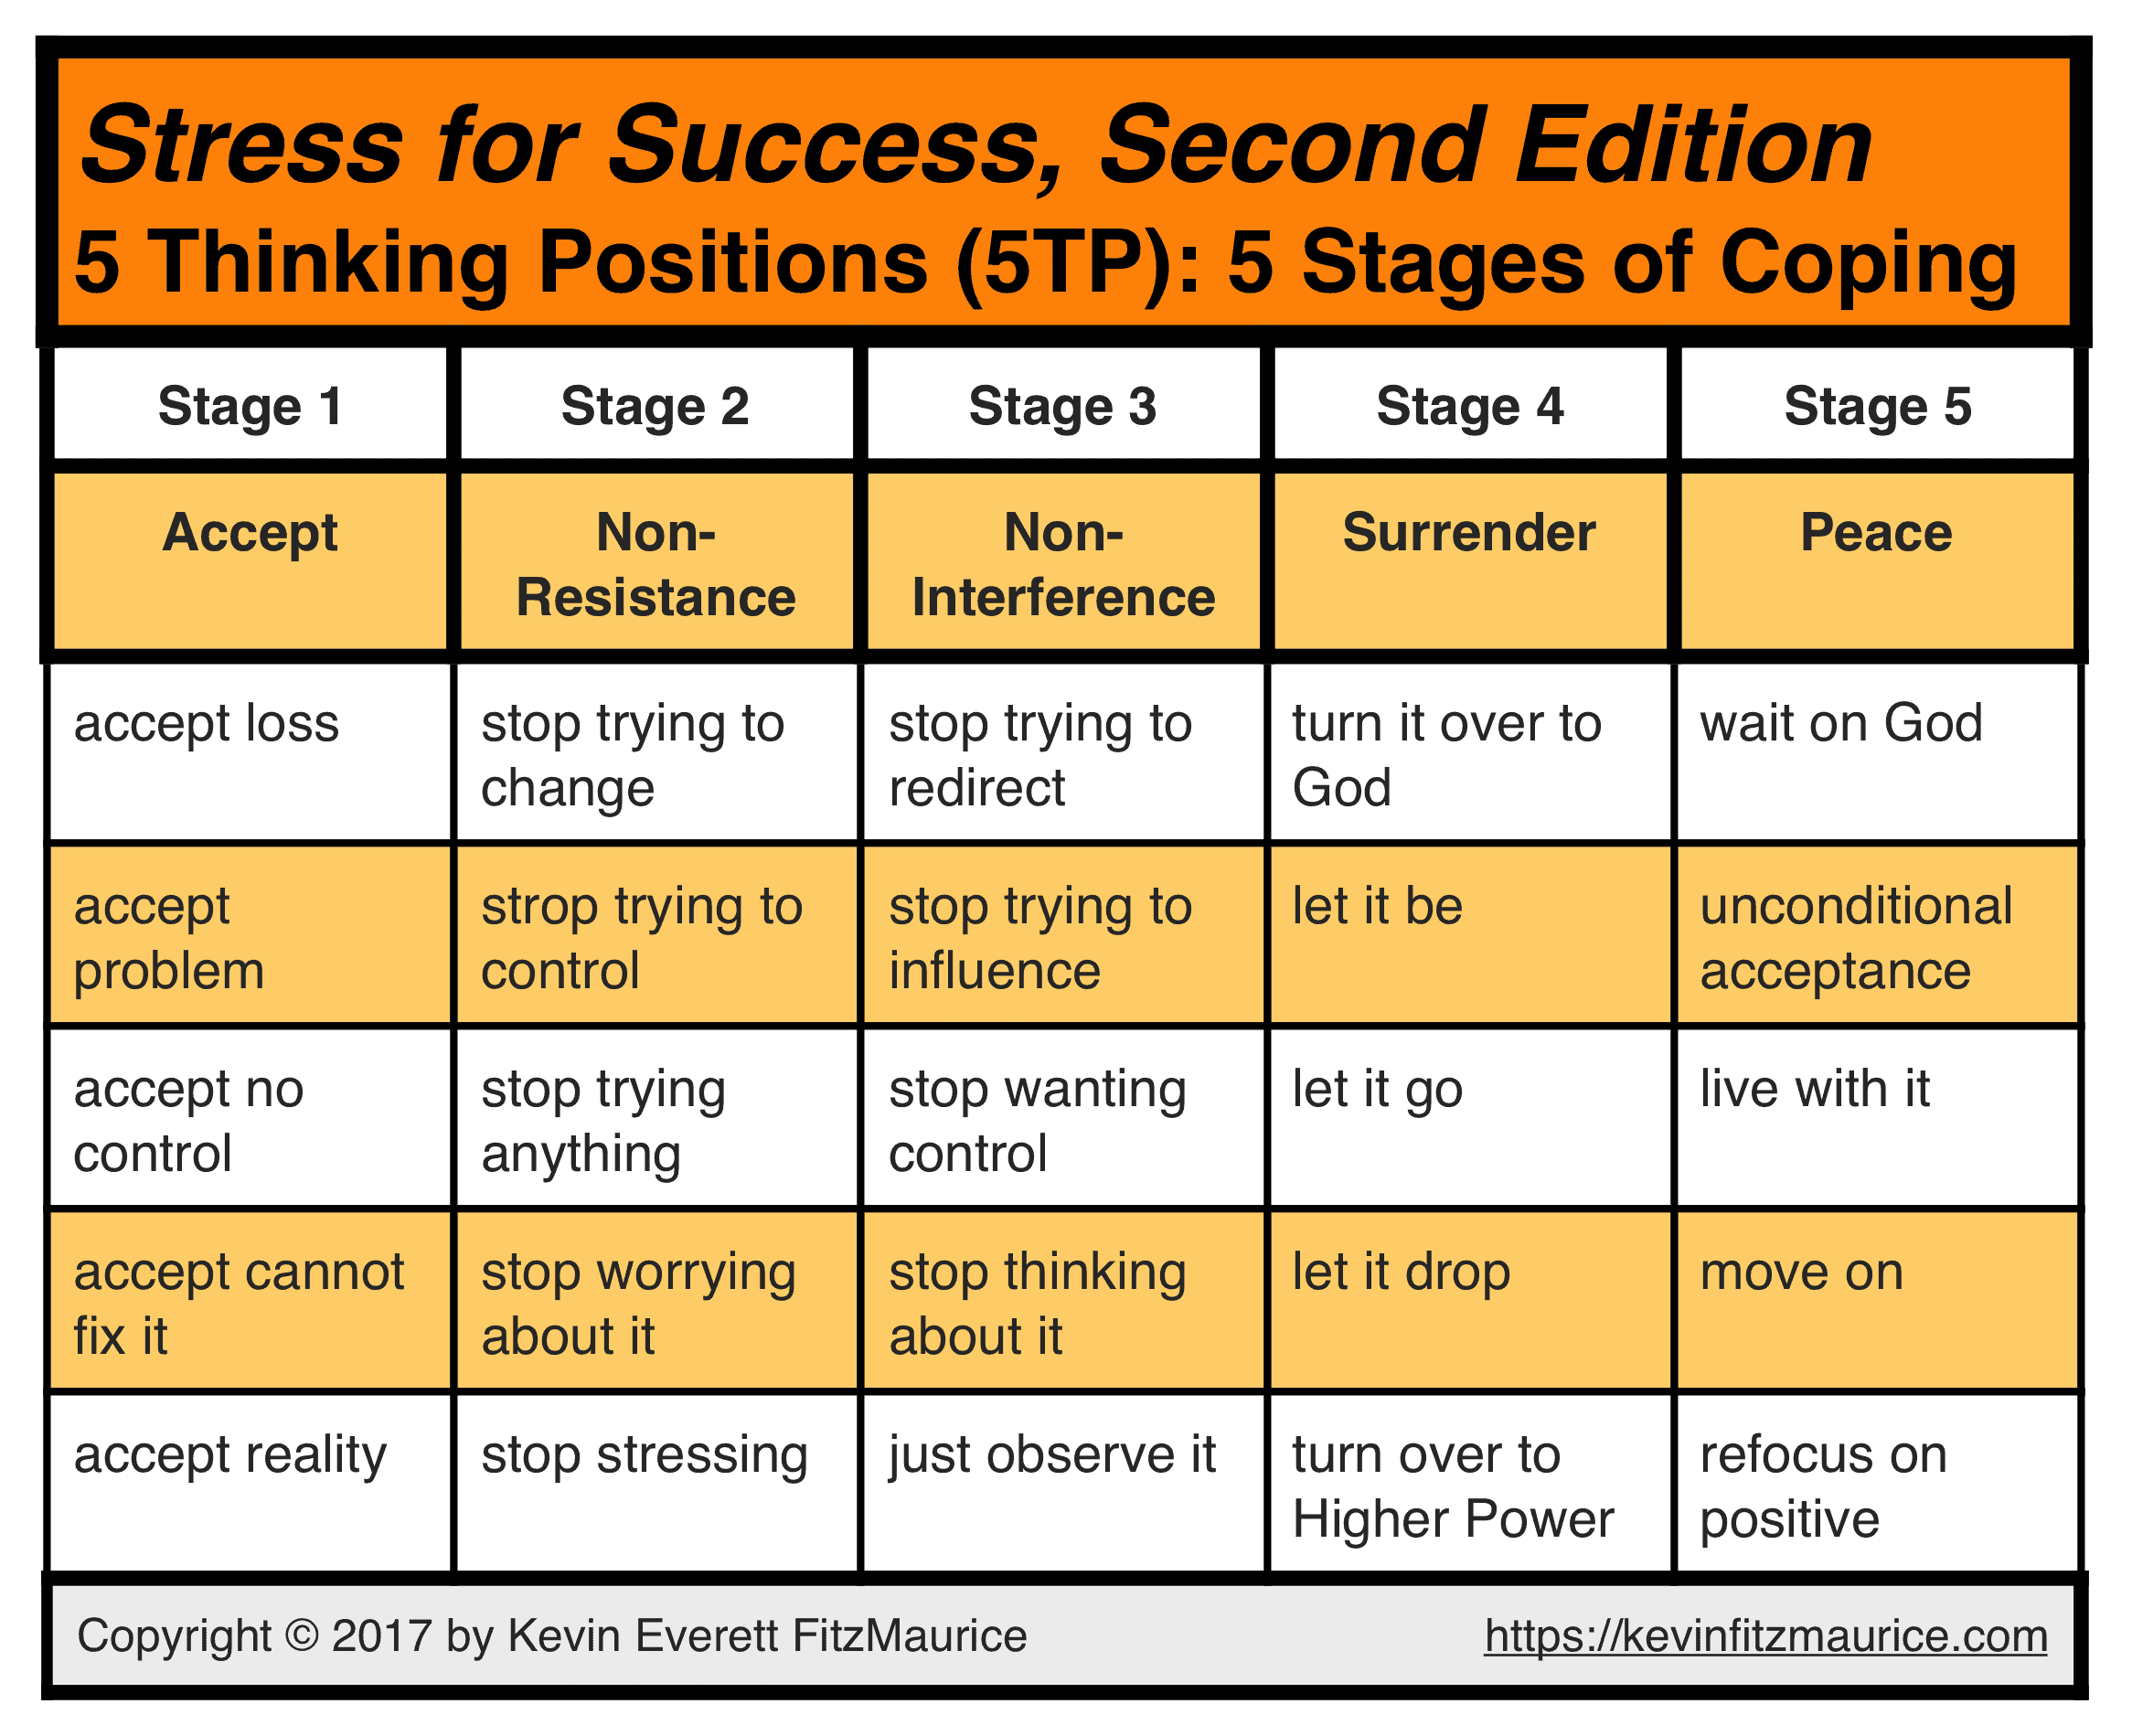 5TP Stages of Coping